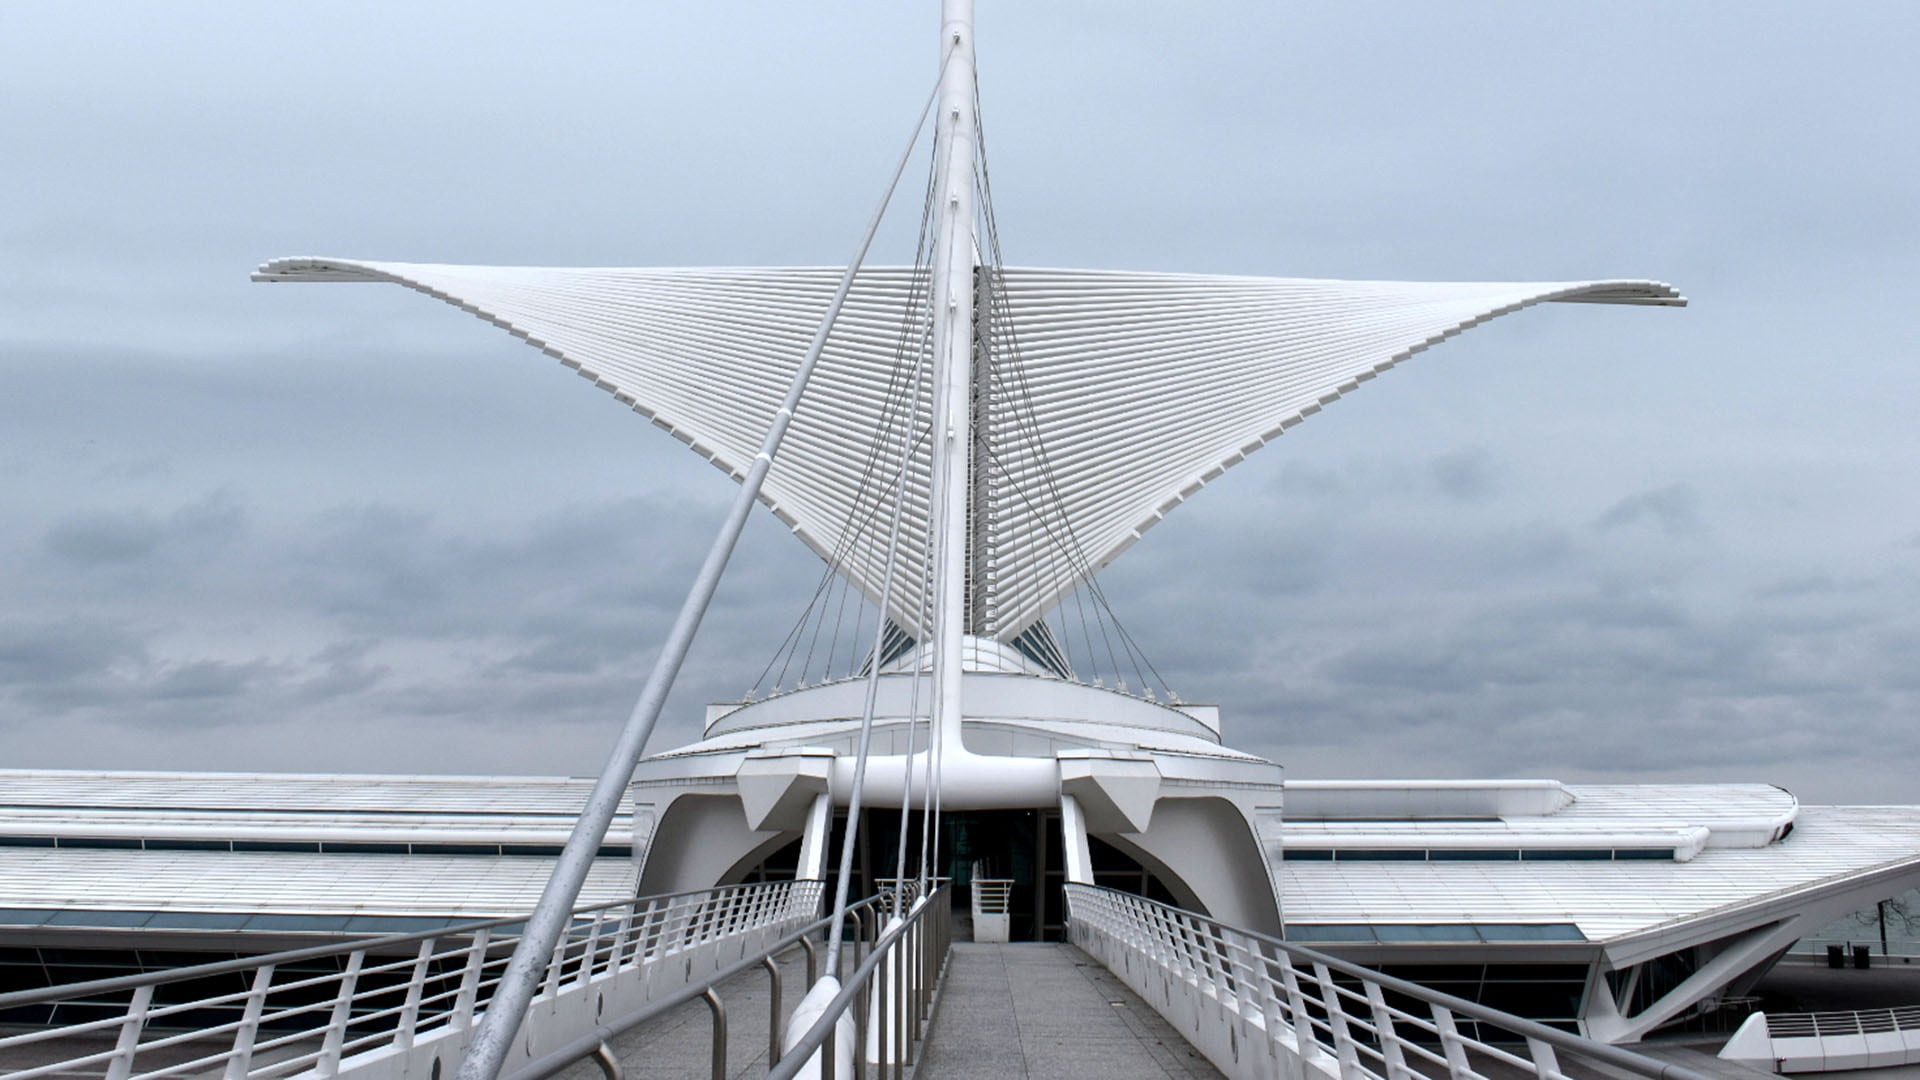 The Milwaukee Art Museum is designed to look like the prow of a ship, which is fitting because it sits on the shore of Lake Michigan.